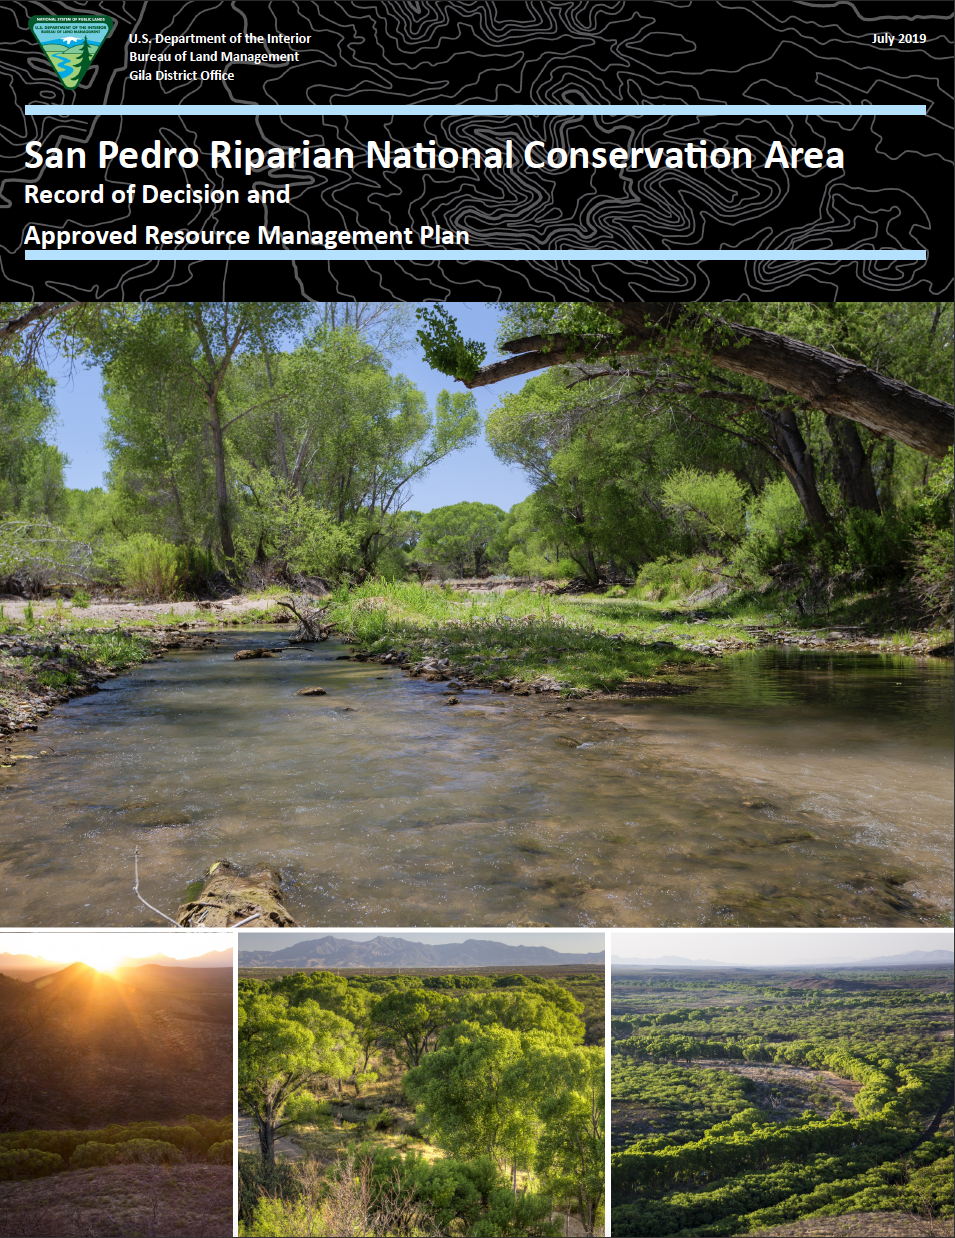 Thumbnail image of document cover: San Pedro Riparian National Conservation Area: Record of Decision and Approved Resource Management Plan